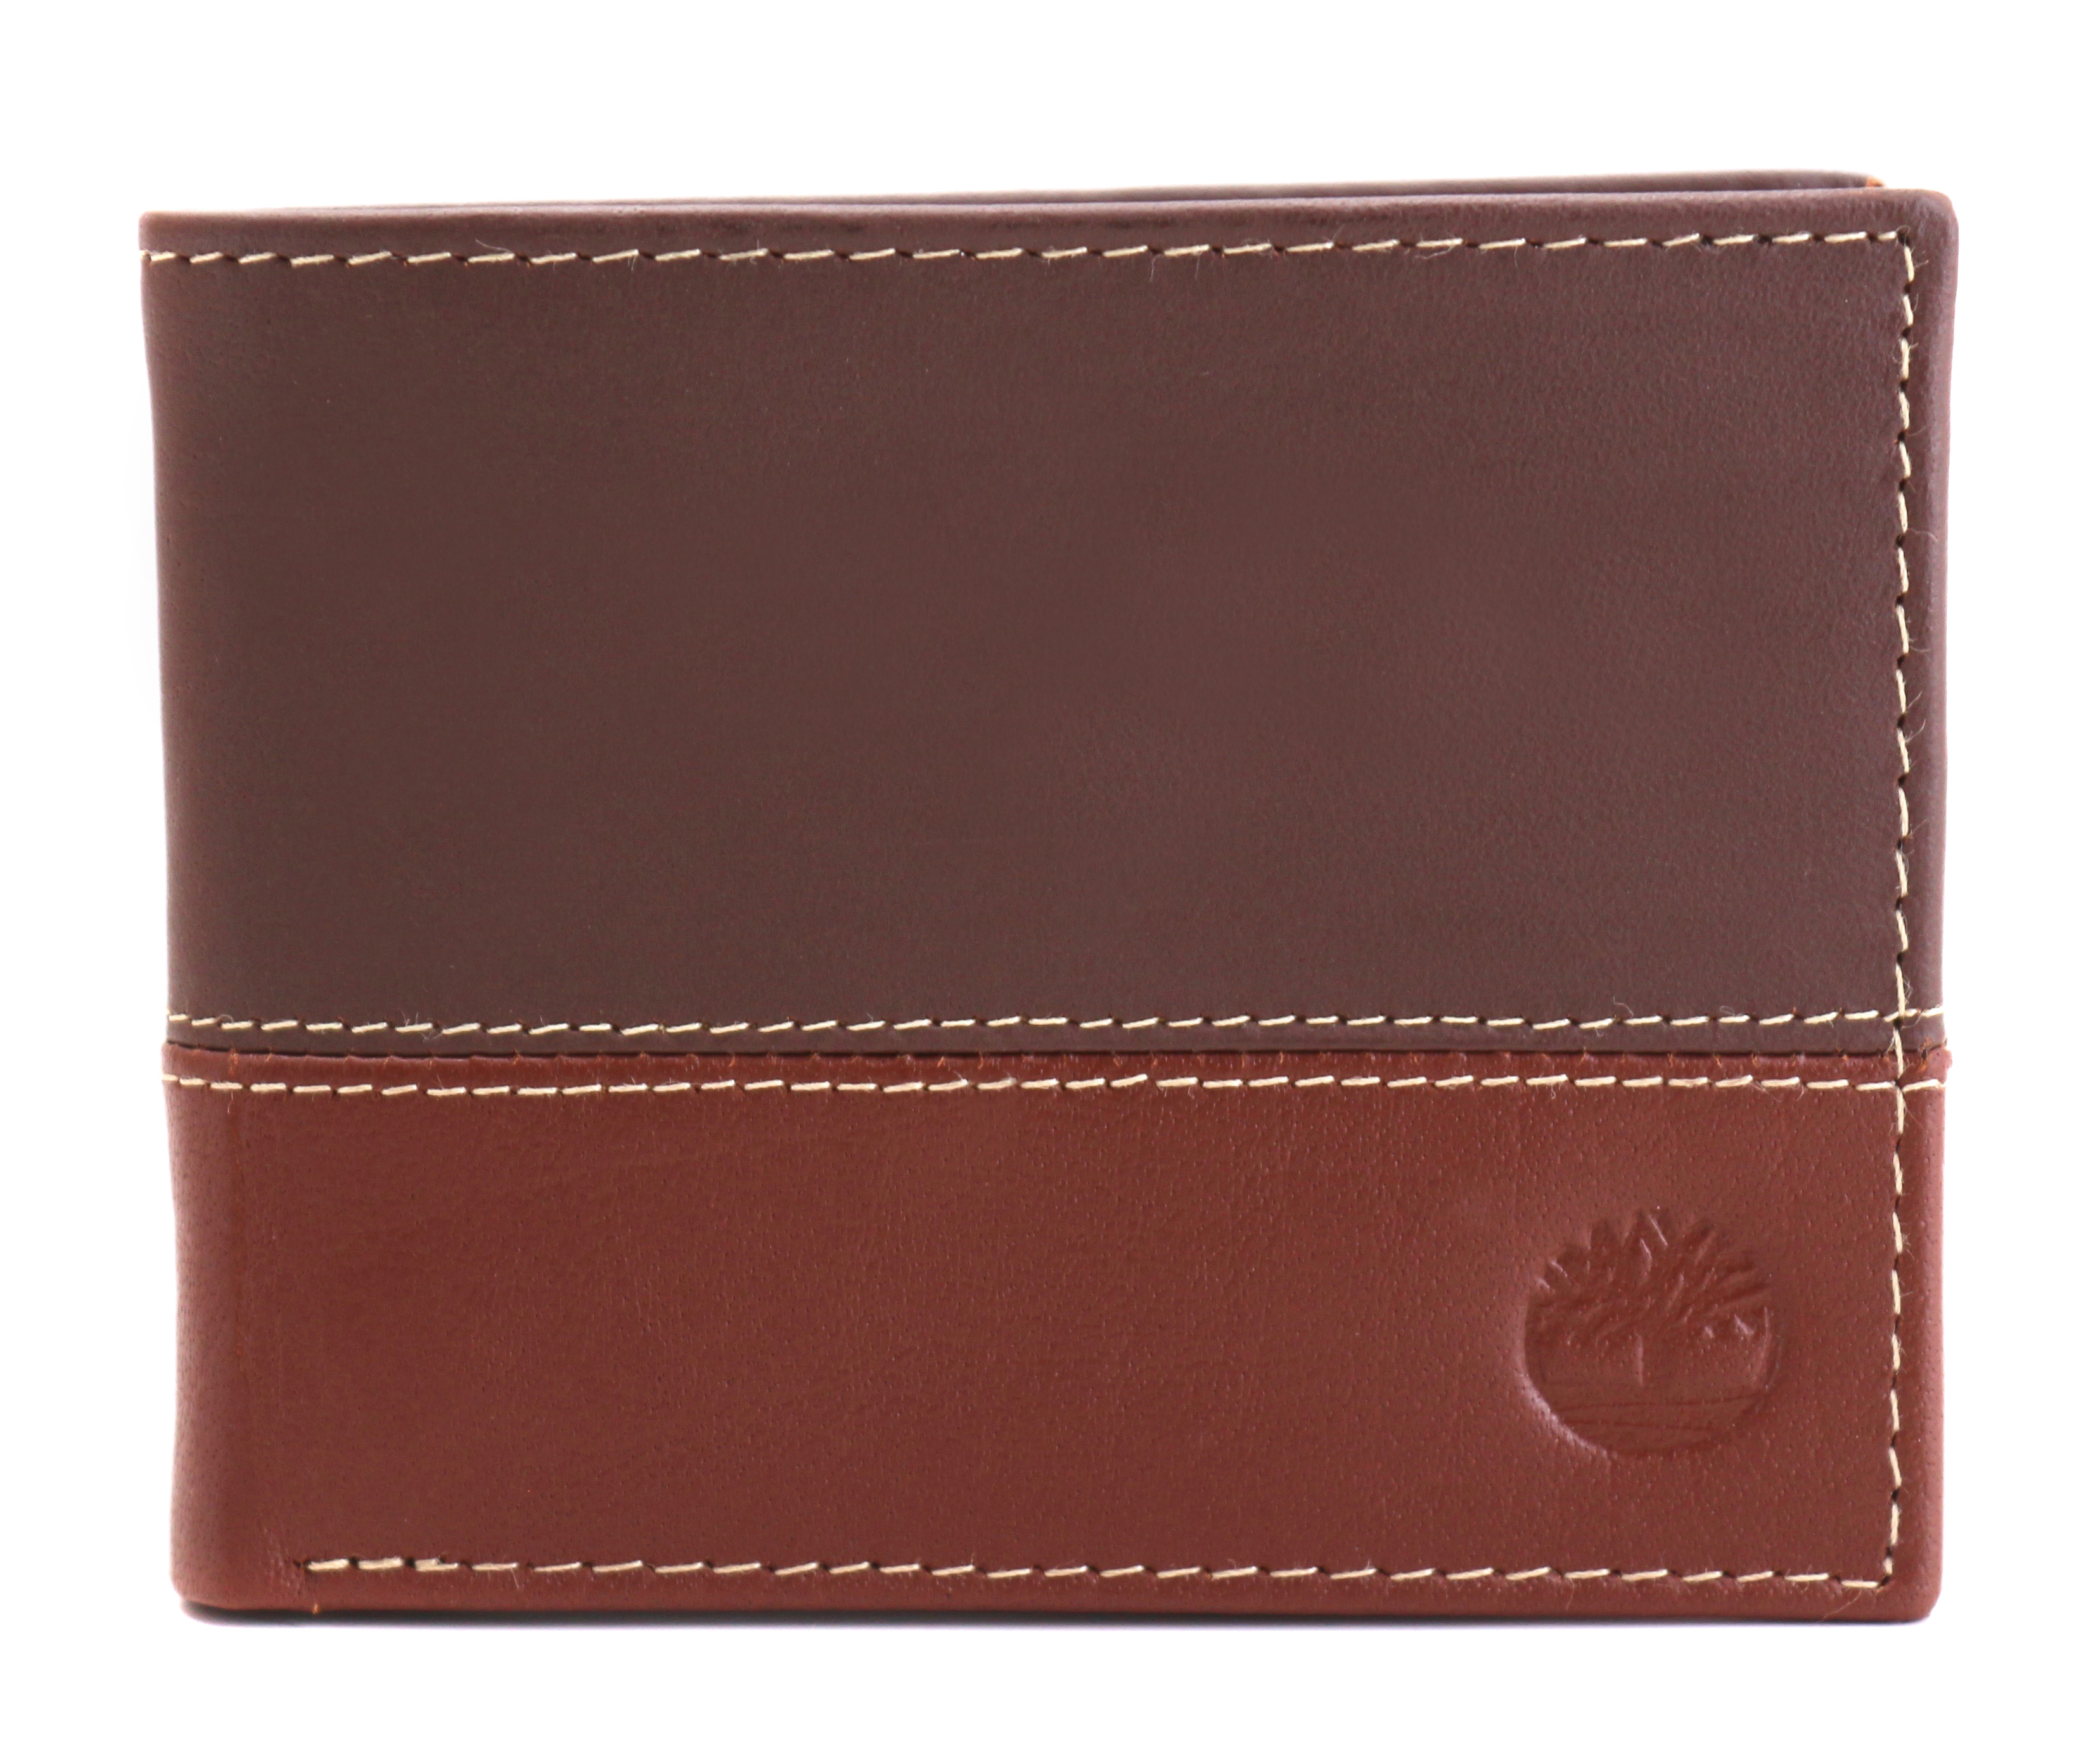 Timberland-Men-039-s-Genuine-Two-Tone-Leather-Credit-Card-Billfold-Commuter-Wallet thumbnail 20